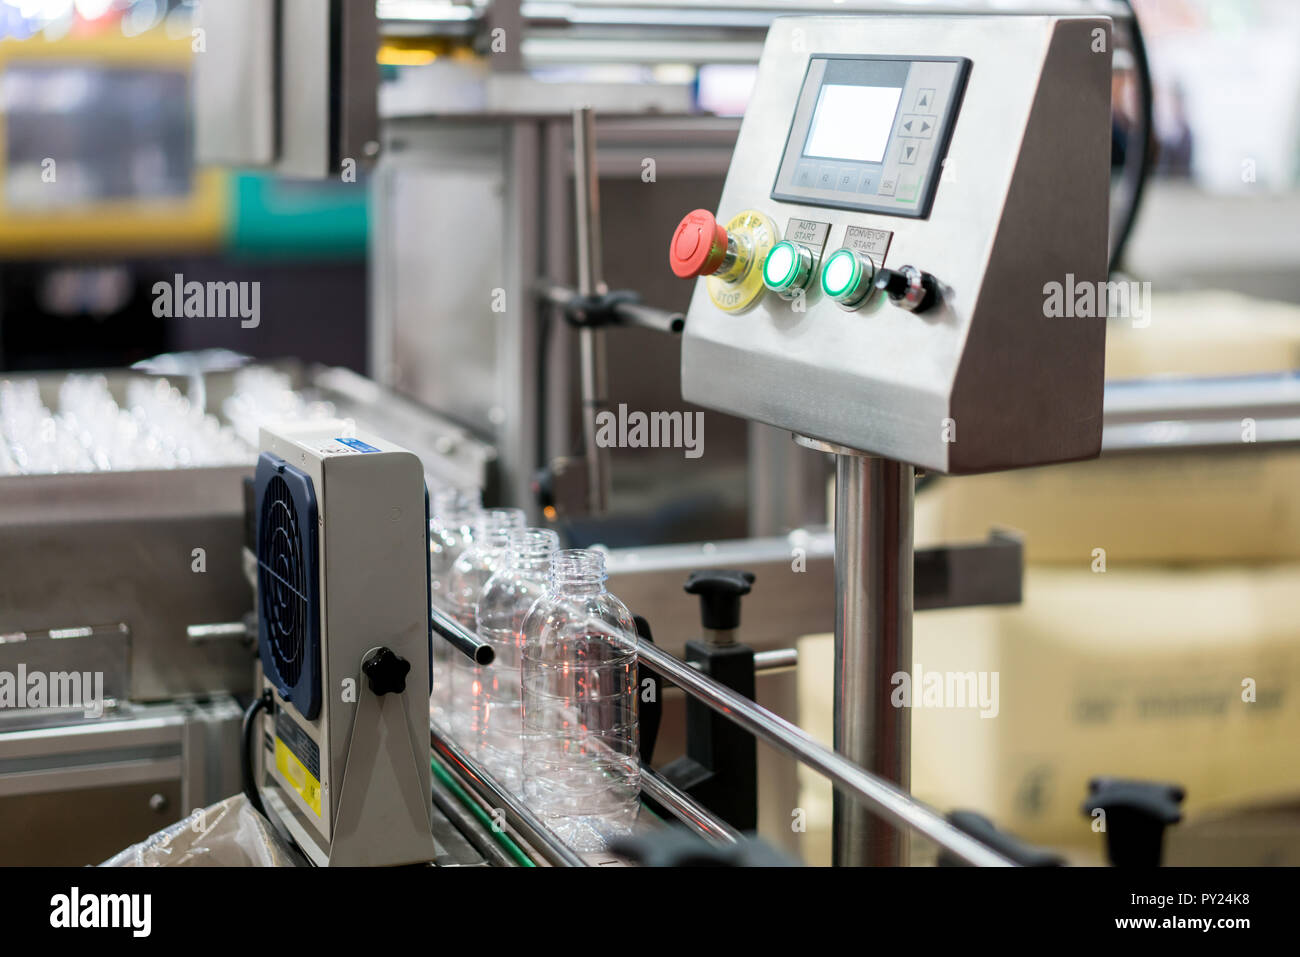 Clear Bottles transfer on Conveyor Belt System. Industrial and factory with machine technology concept. - Stock Image